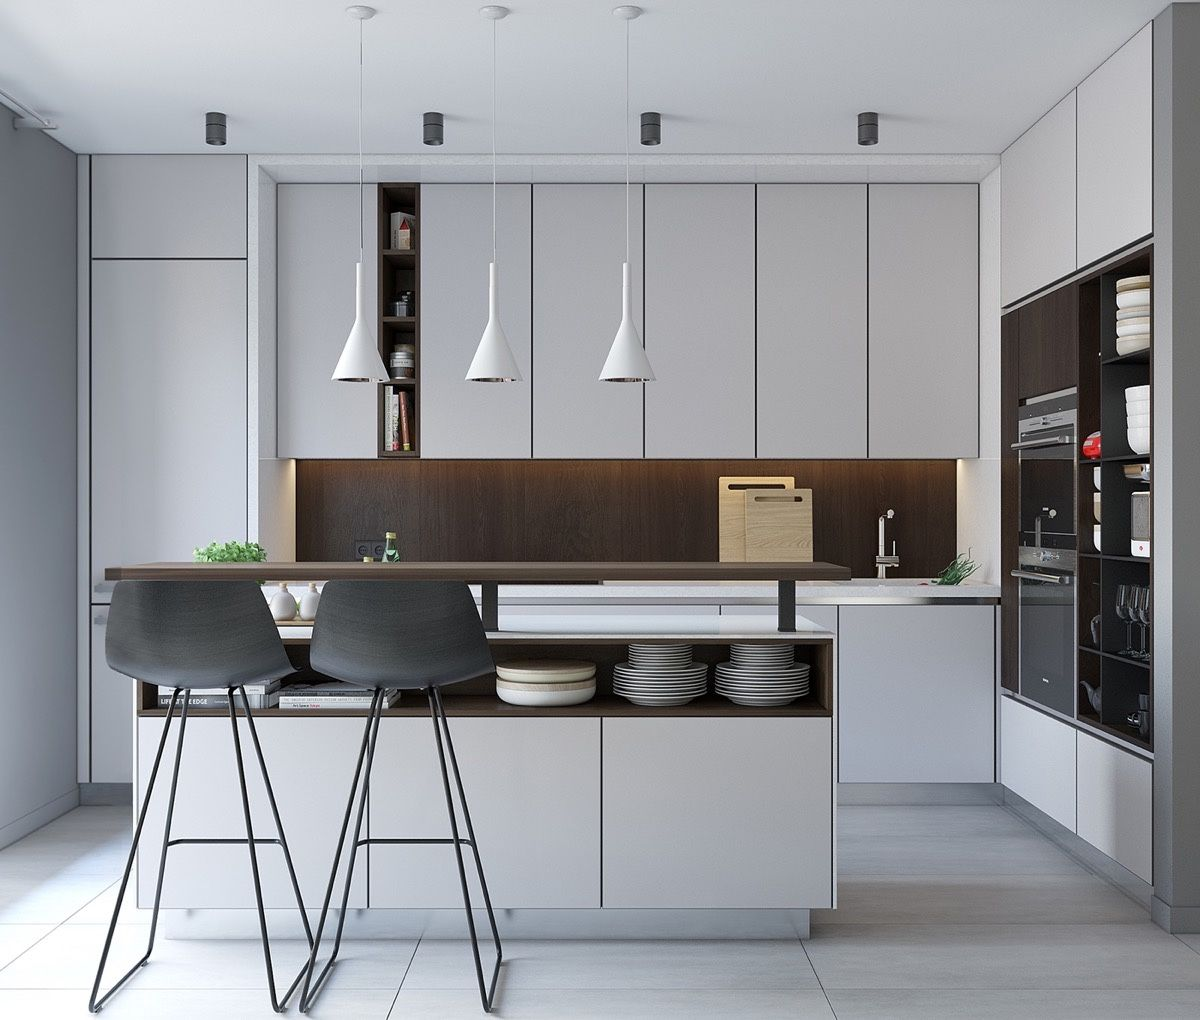 6 Modern Kitchen Designs That Use Unconventional Geometry